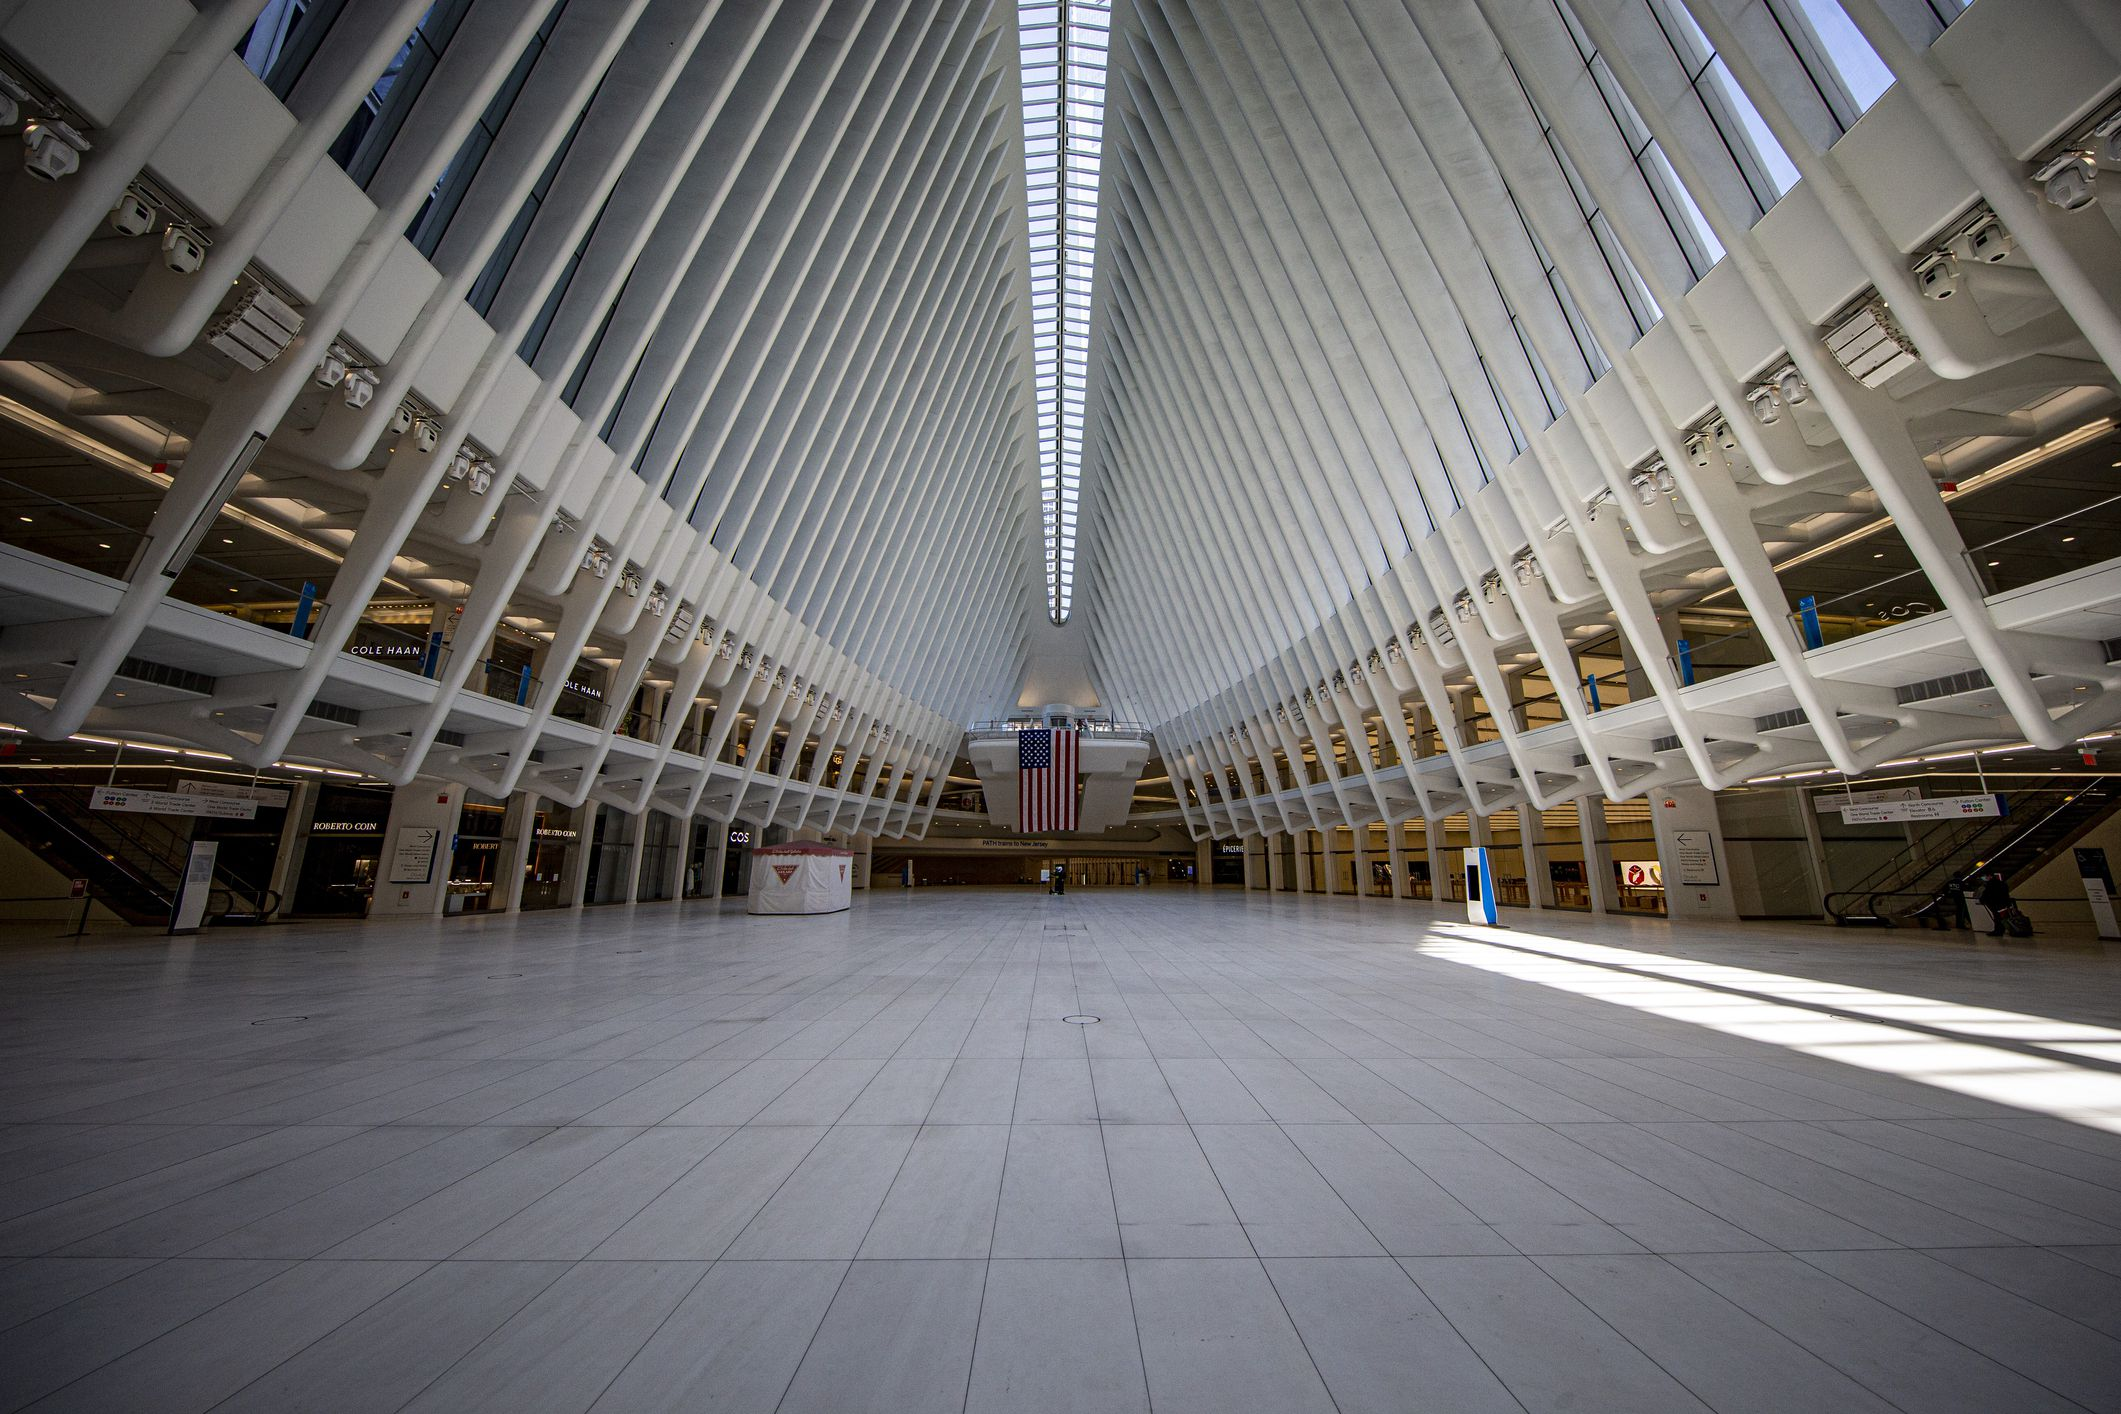 Slide 34 of 52: The transportation hub, which houses 12 New York City subway lines and the N.J World Trade Center PATH station, was designed as a memorial to the 9/11 terrorist attacks. It also houses many high-end retail shops.